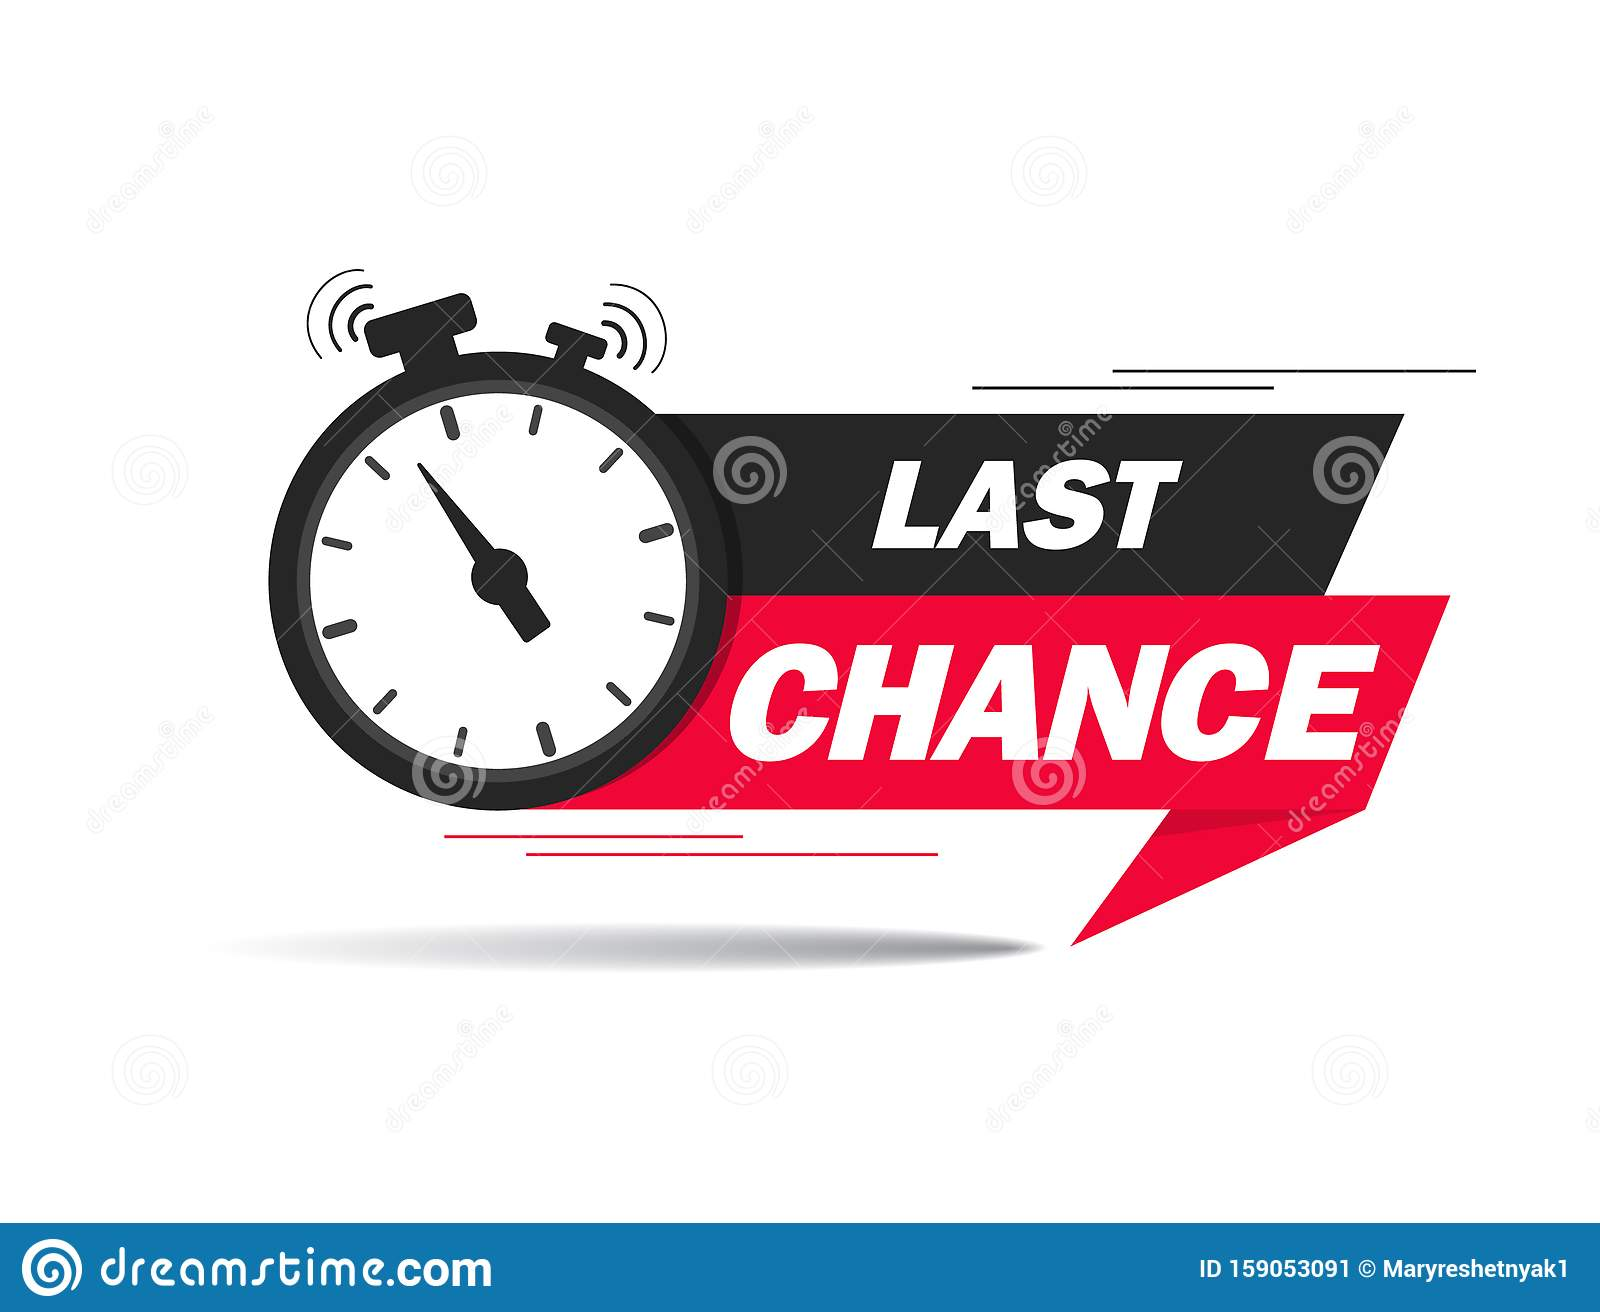 Red ribbon with clock and last chance seal. Sale banner with countdown alarm clock for retail, shop, social media, advertising.